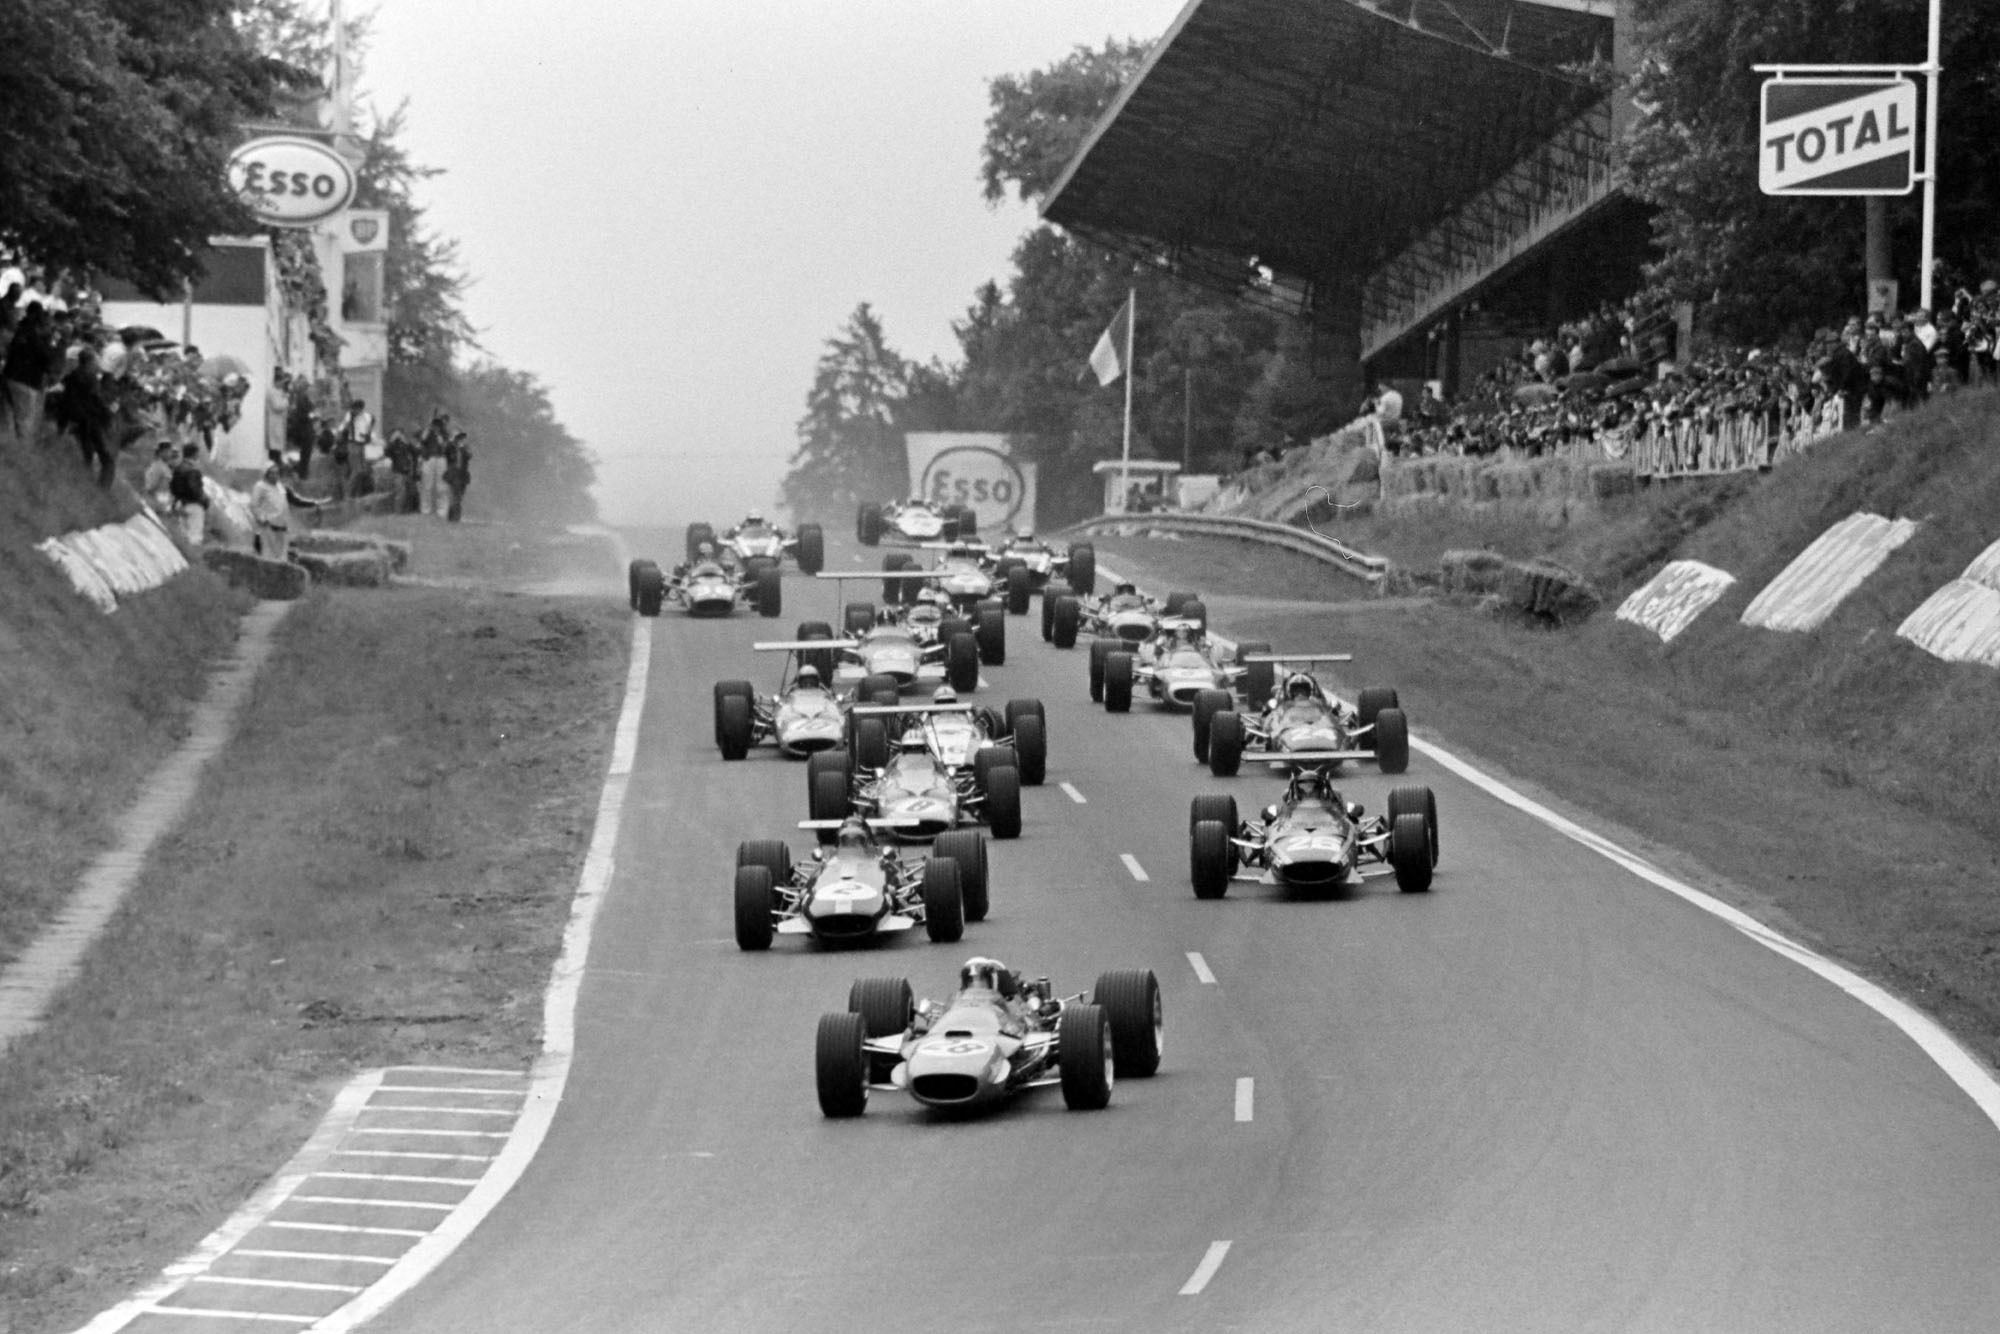 Jackie Stewart, Matra MS10 Ford, leads Jochen Rindt, Brabham BT26 Repco, and Jacky Ickx, Ferrari 312, at the start of the race.